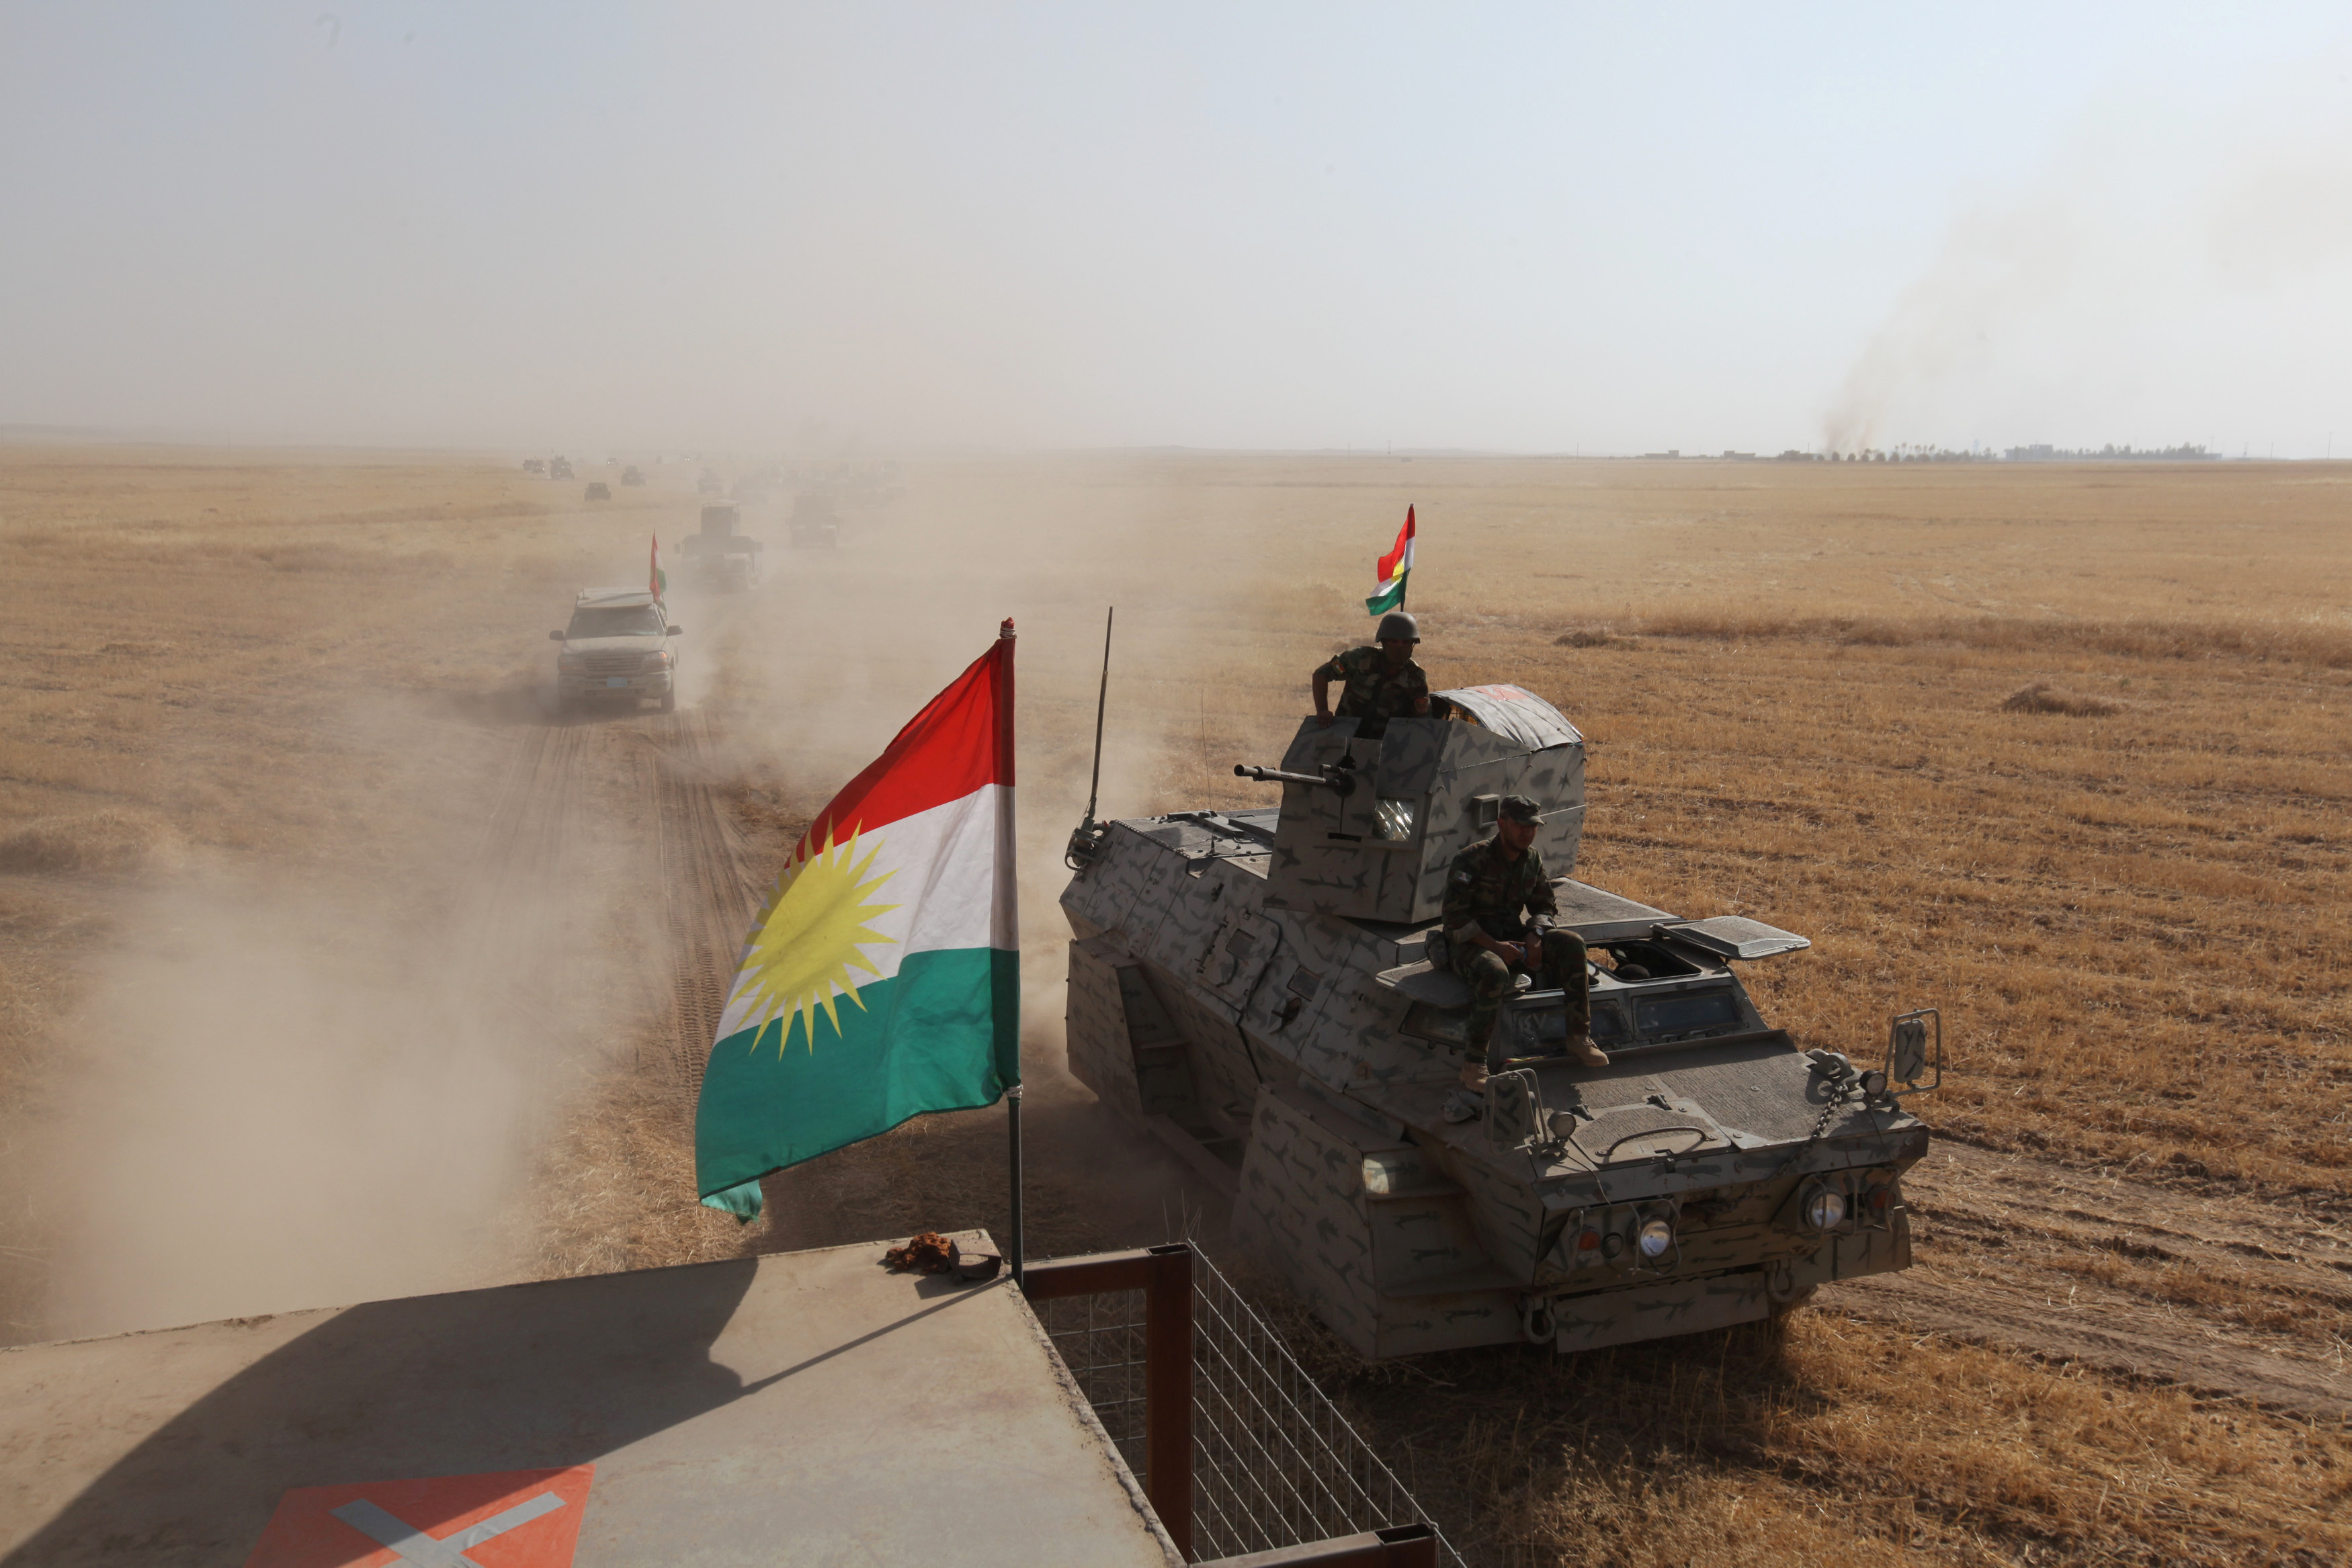 A Kurdish flag is seen on military vehicles of the Kurdish Peshmerga forces on the southeast of Mosul